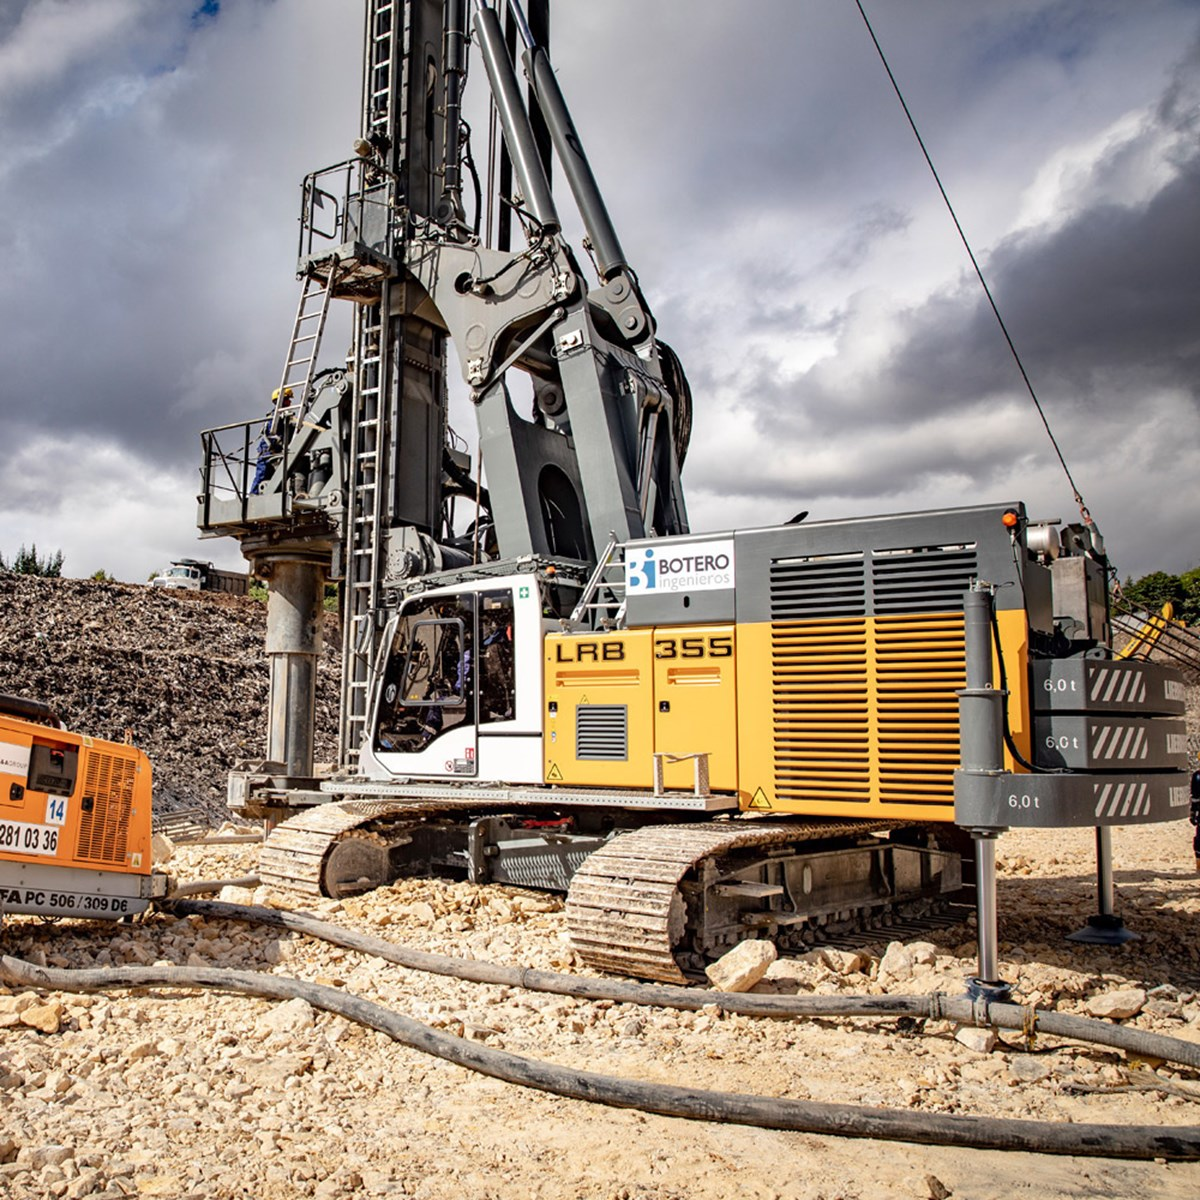 liebherr-lrb-355-piling-and-drilling-rig-full-displacement-columbia-4-1.jpg